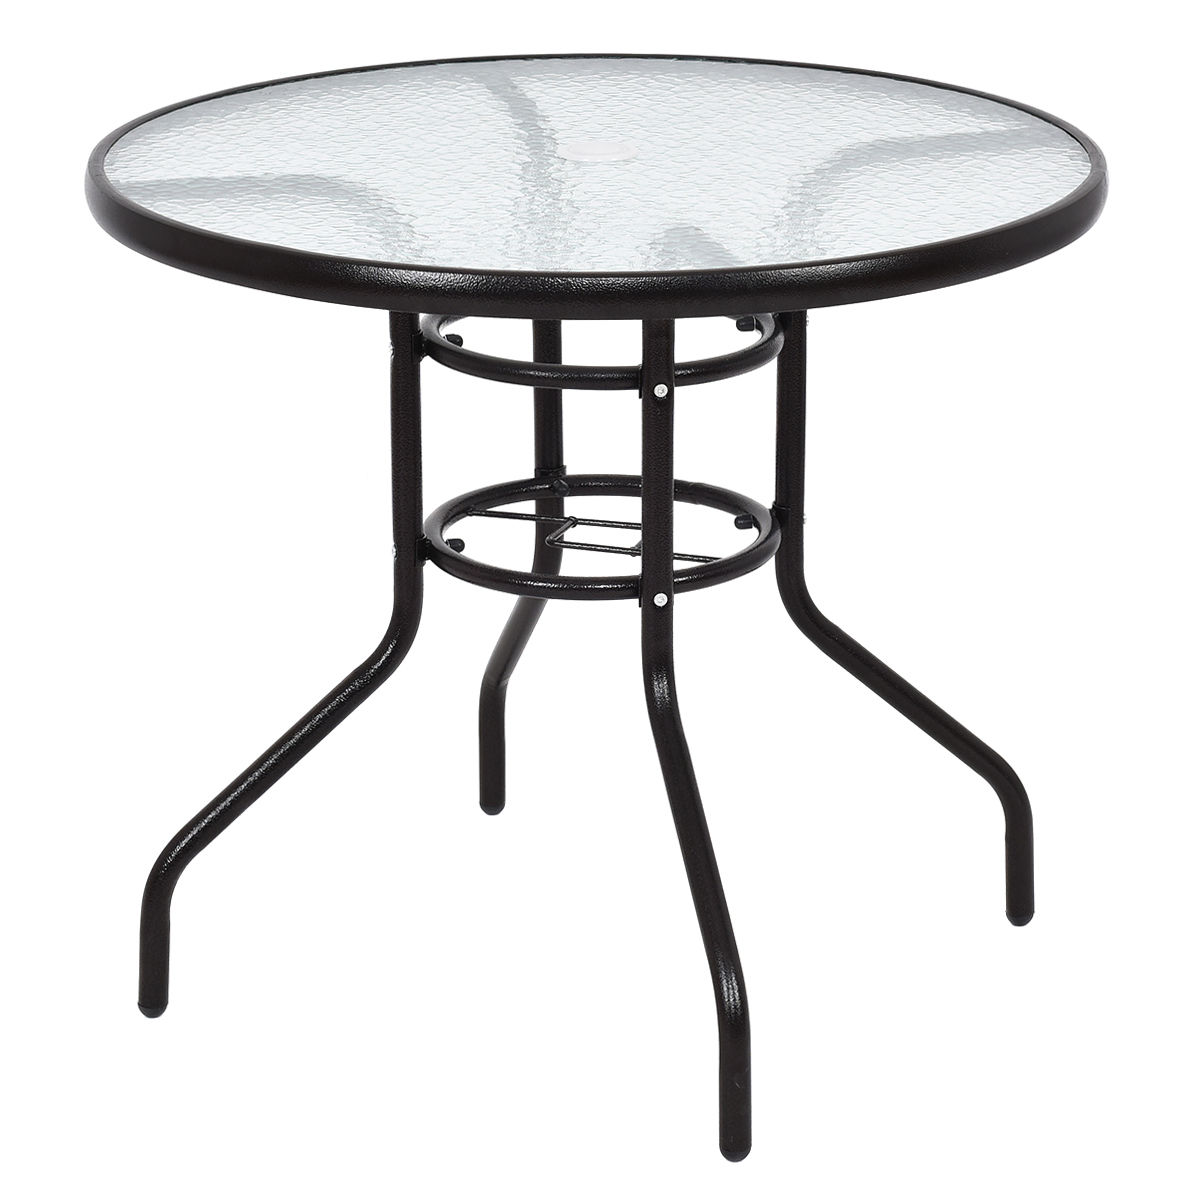 Costway 31 1/2'' Patio Round Table Steel Frame Dining Table Patio Furniture Glass Top